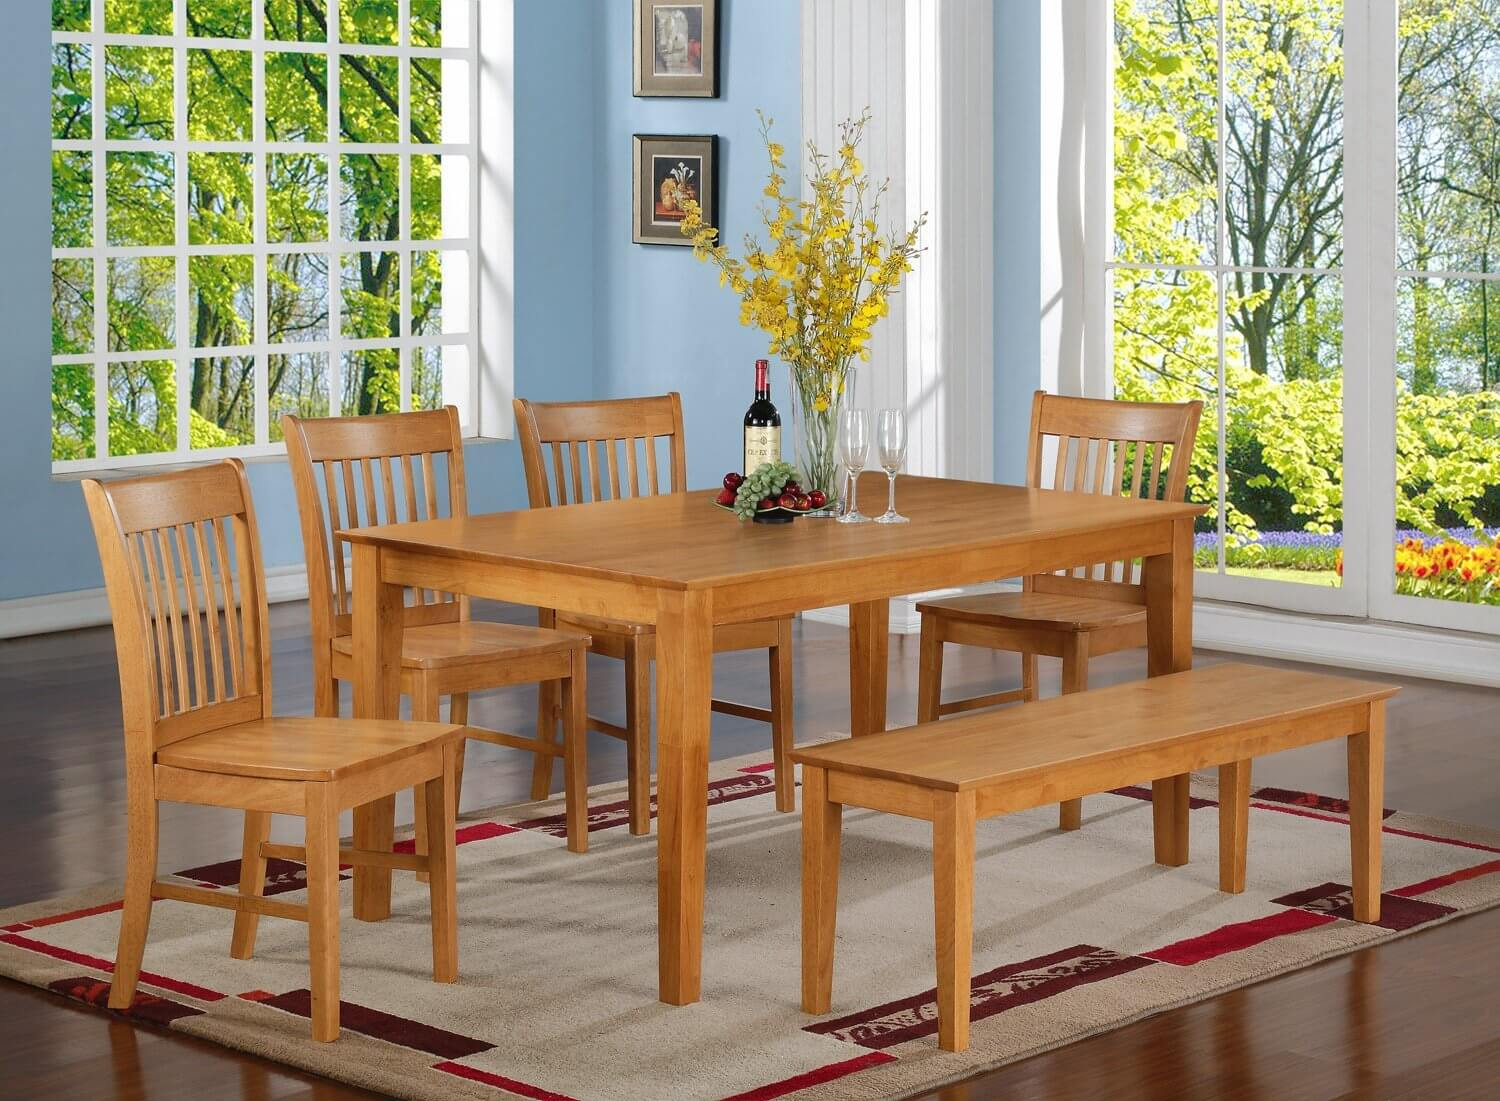 Oak finish six piece bench-style dining room set with large rectangle table. It's constructed out of 100% Asian solid wood (there is no veneer or MDF in this set).